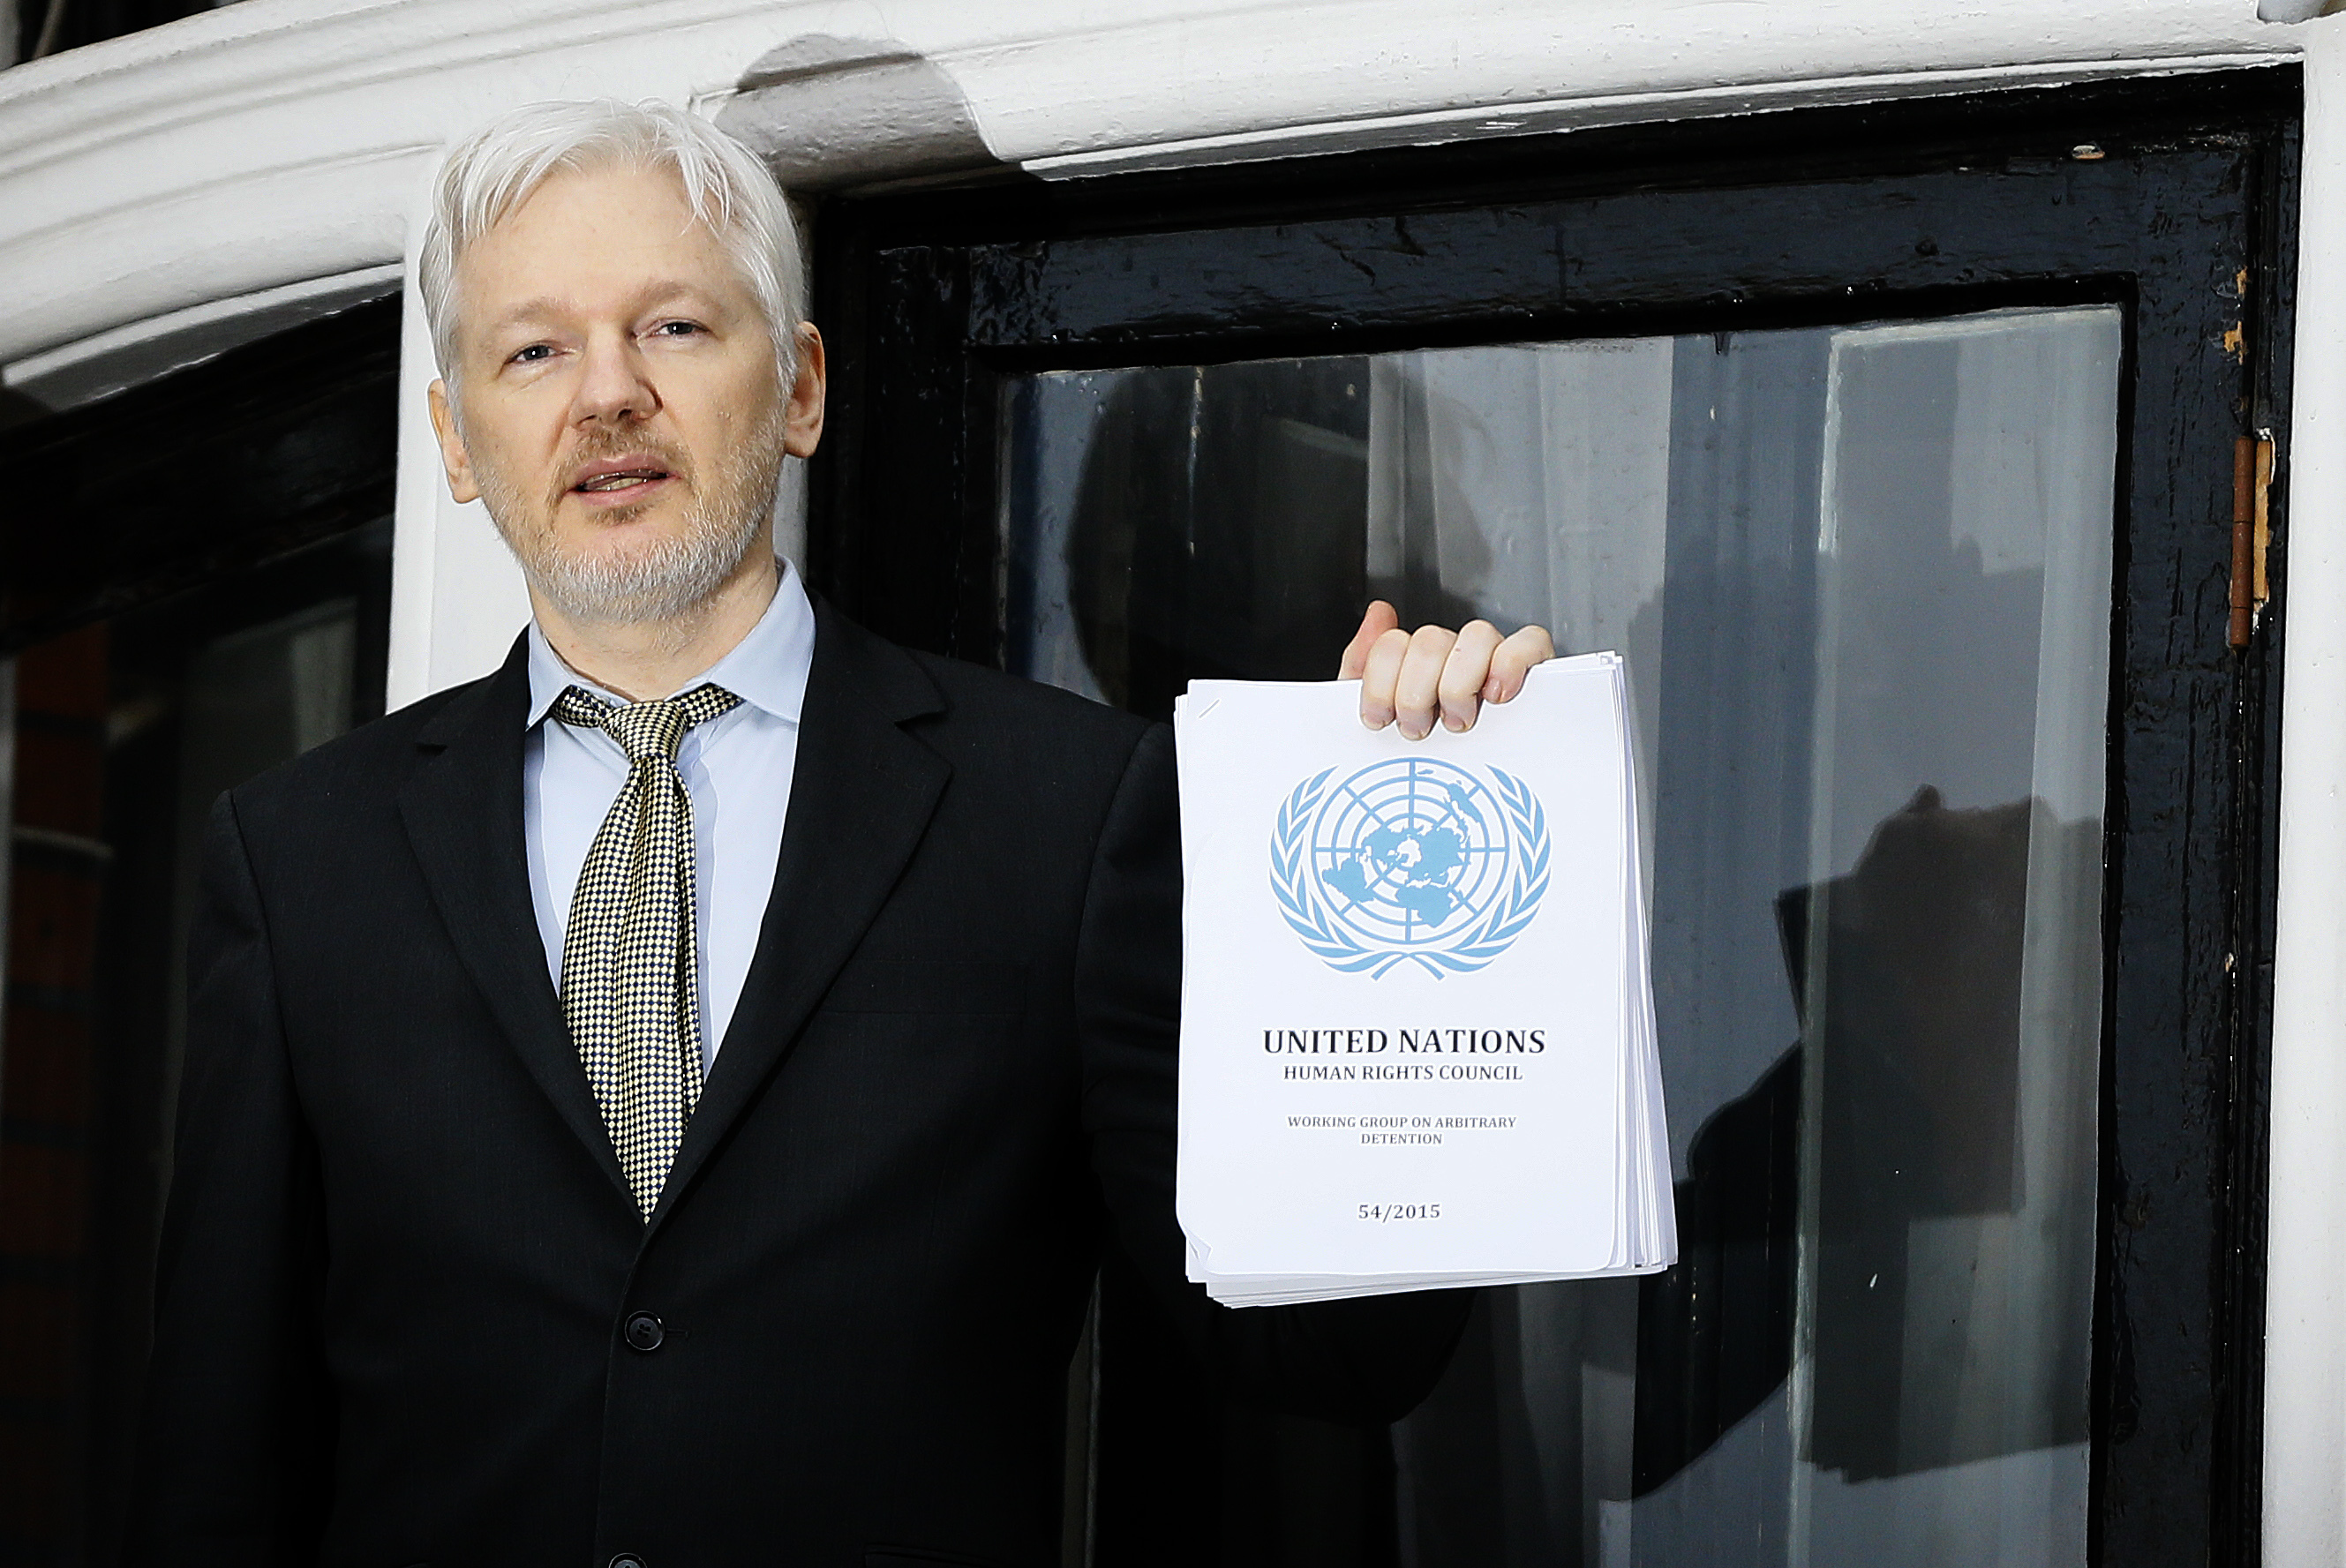 Assange backtracks on extradition pledge